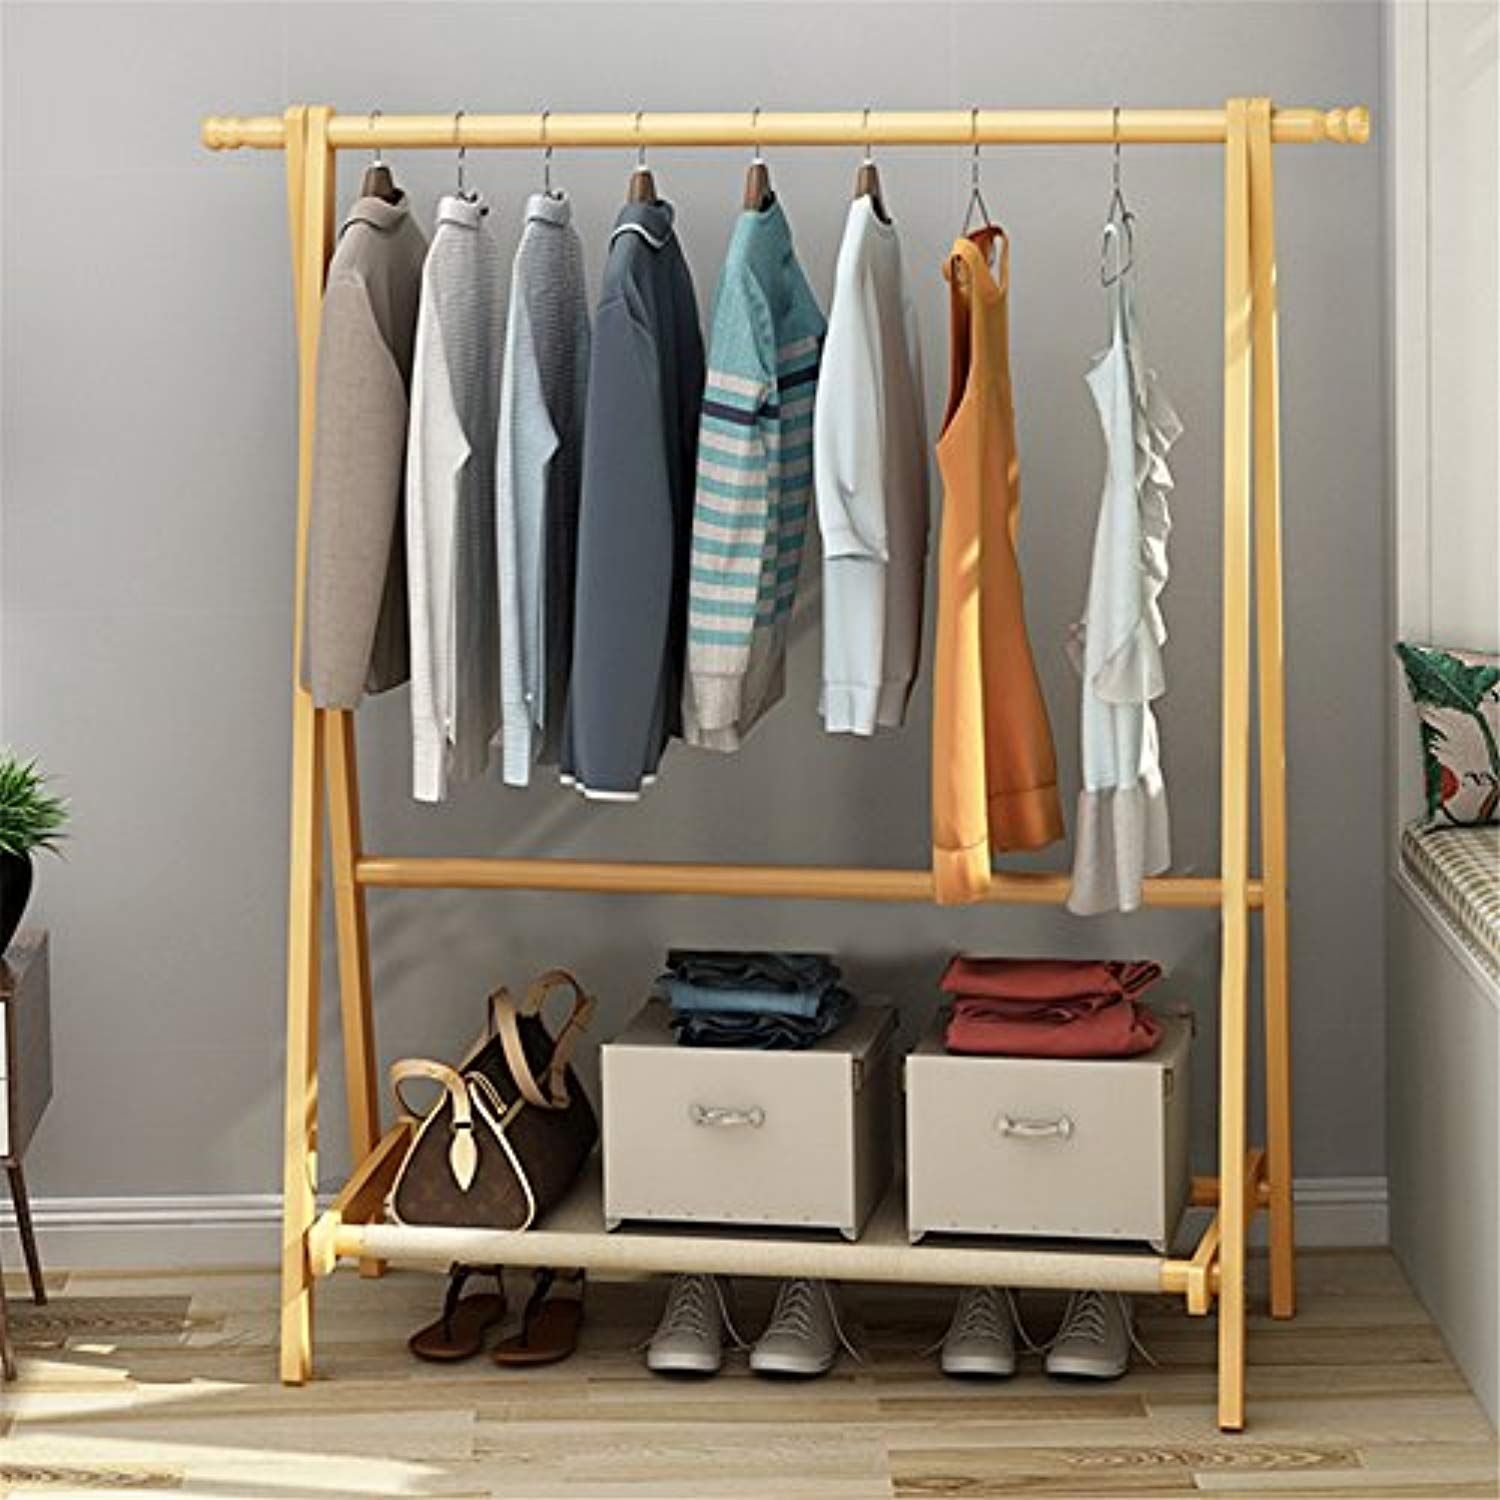 Dlandhome solid wood clothing garment rack entryway free standing